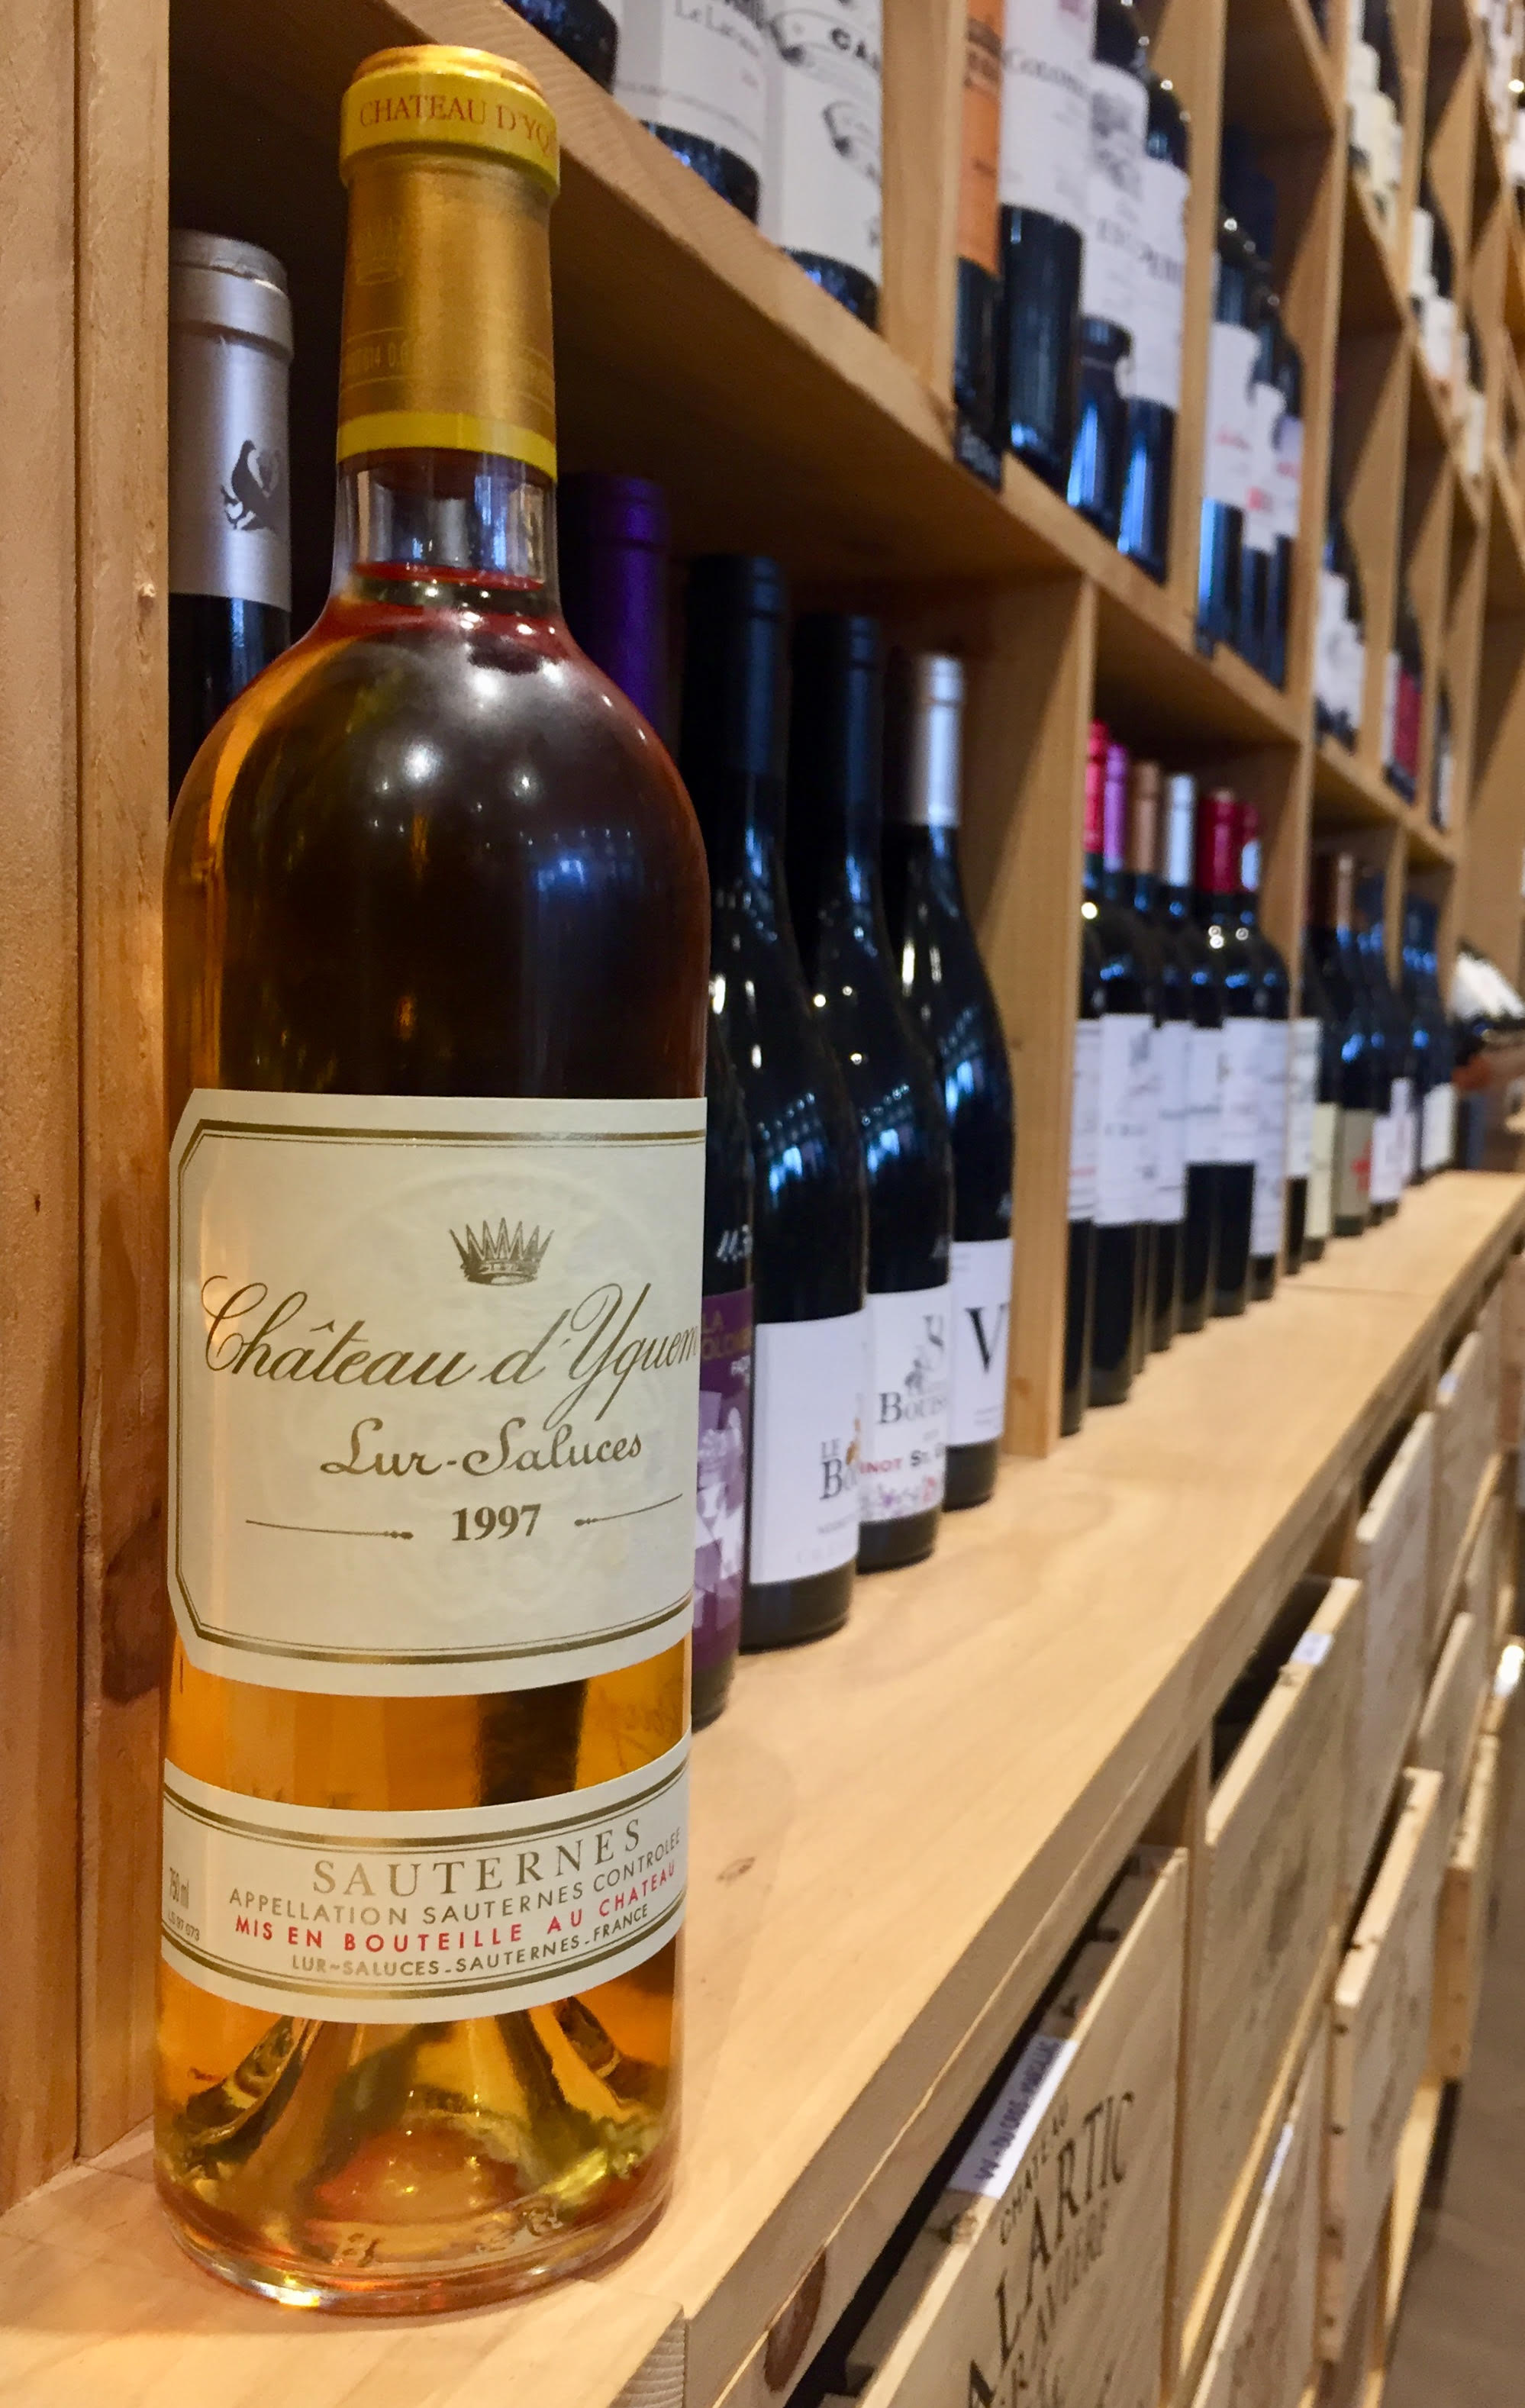 Le Sauternes, une appellation d'exception